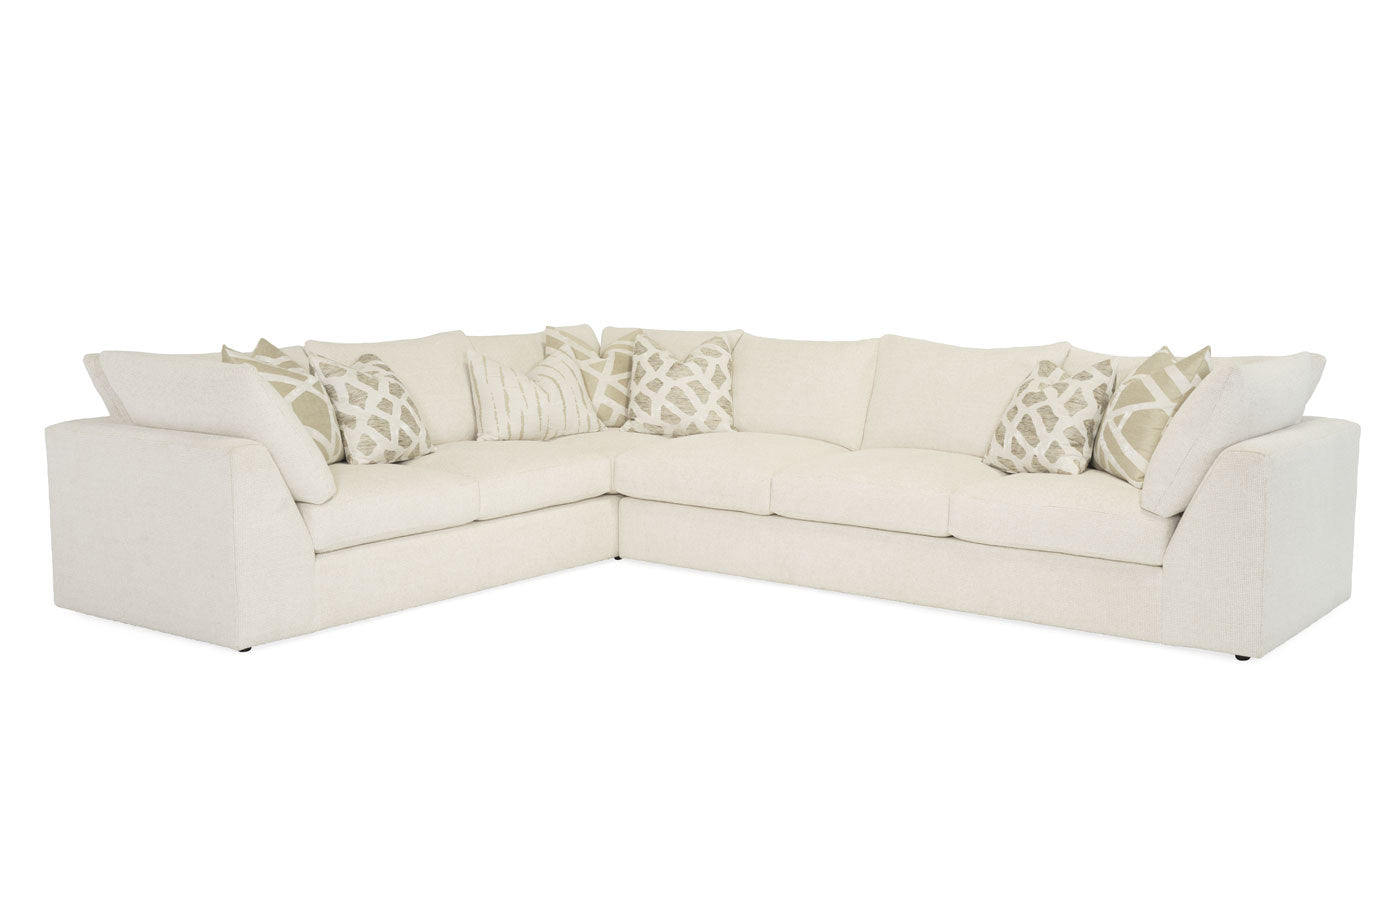 Cristiano 2pc. Sectional (with Correlate Pillows)  New!